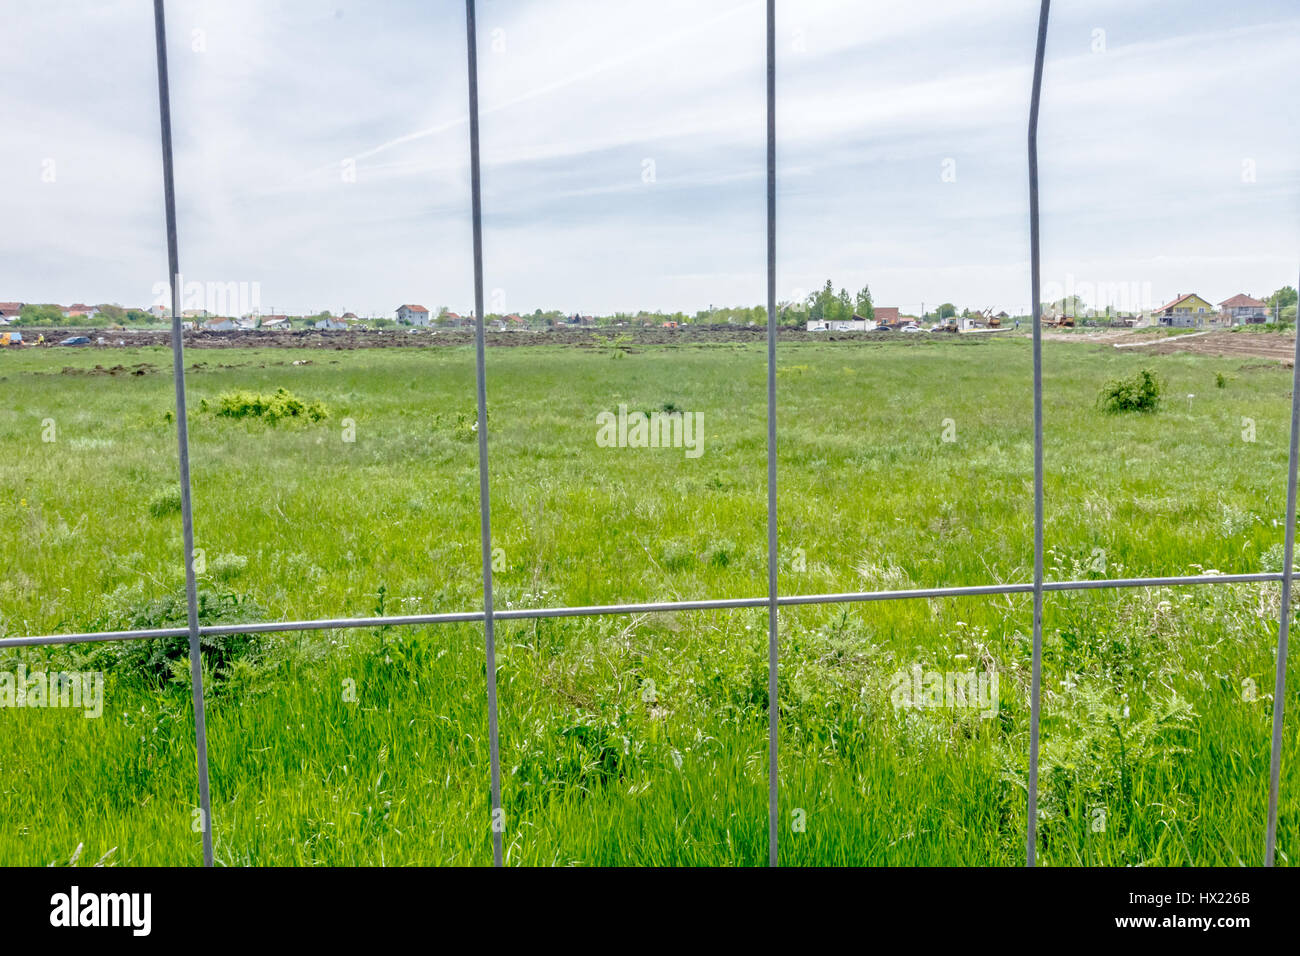 View on the construction site through a fence wire with quadratic shape. - Stock Image